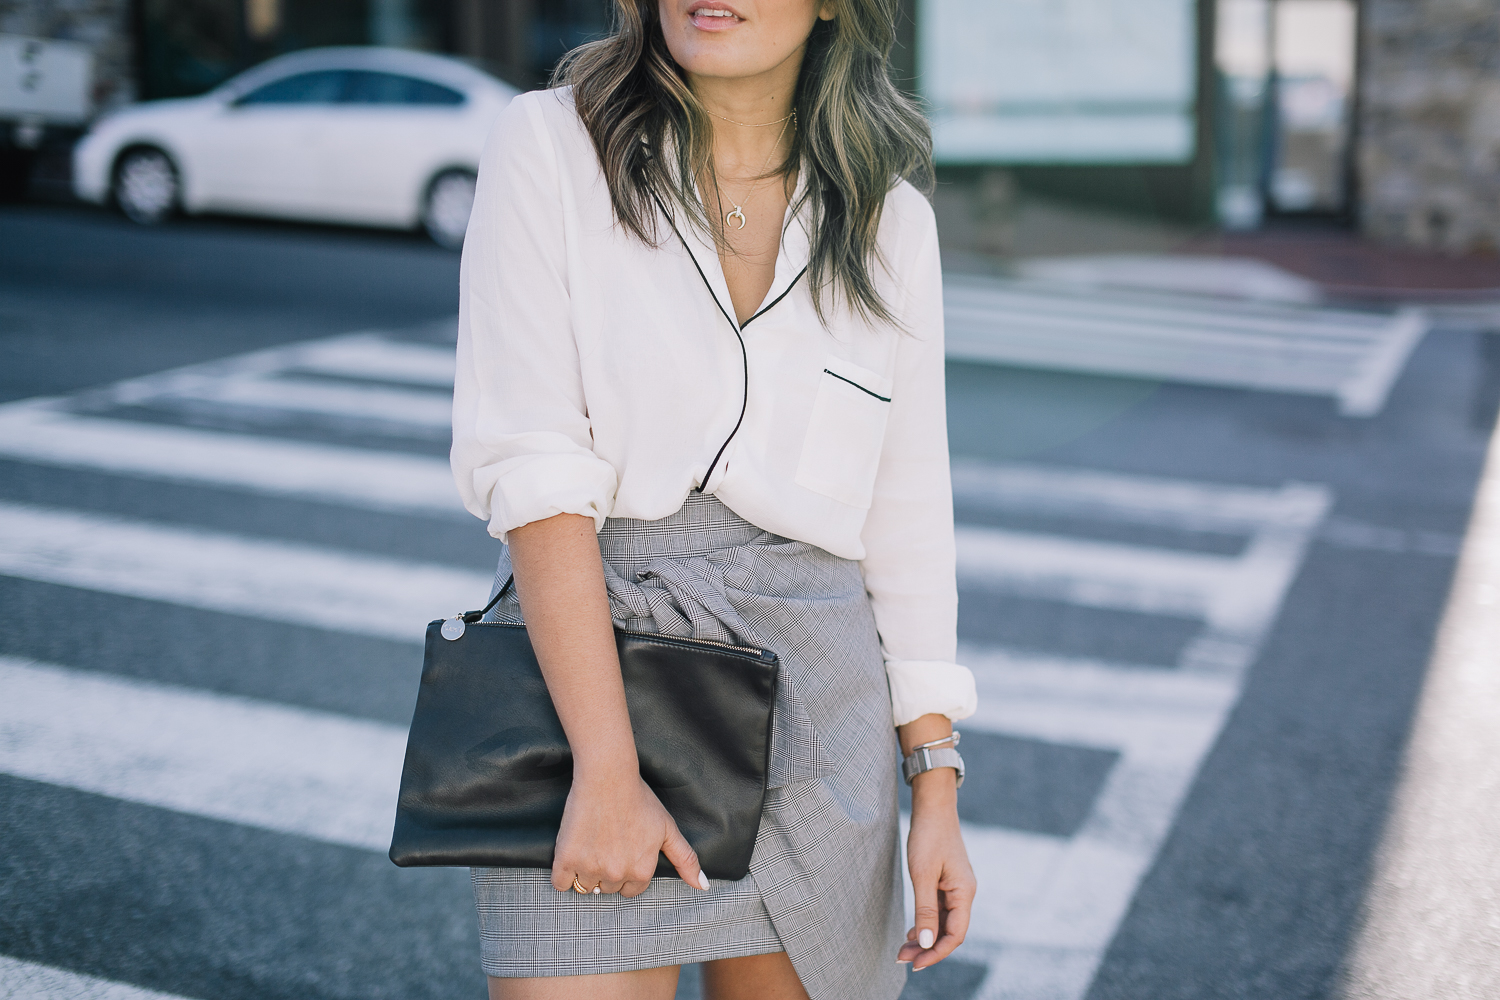 Style MBA wears Clare V Tote at Nordstrom